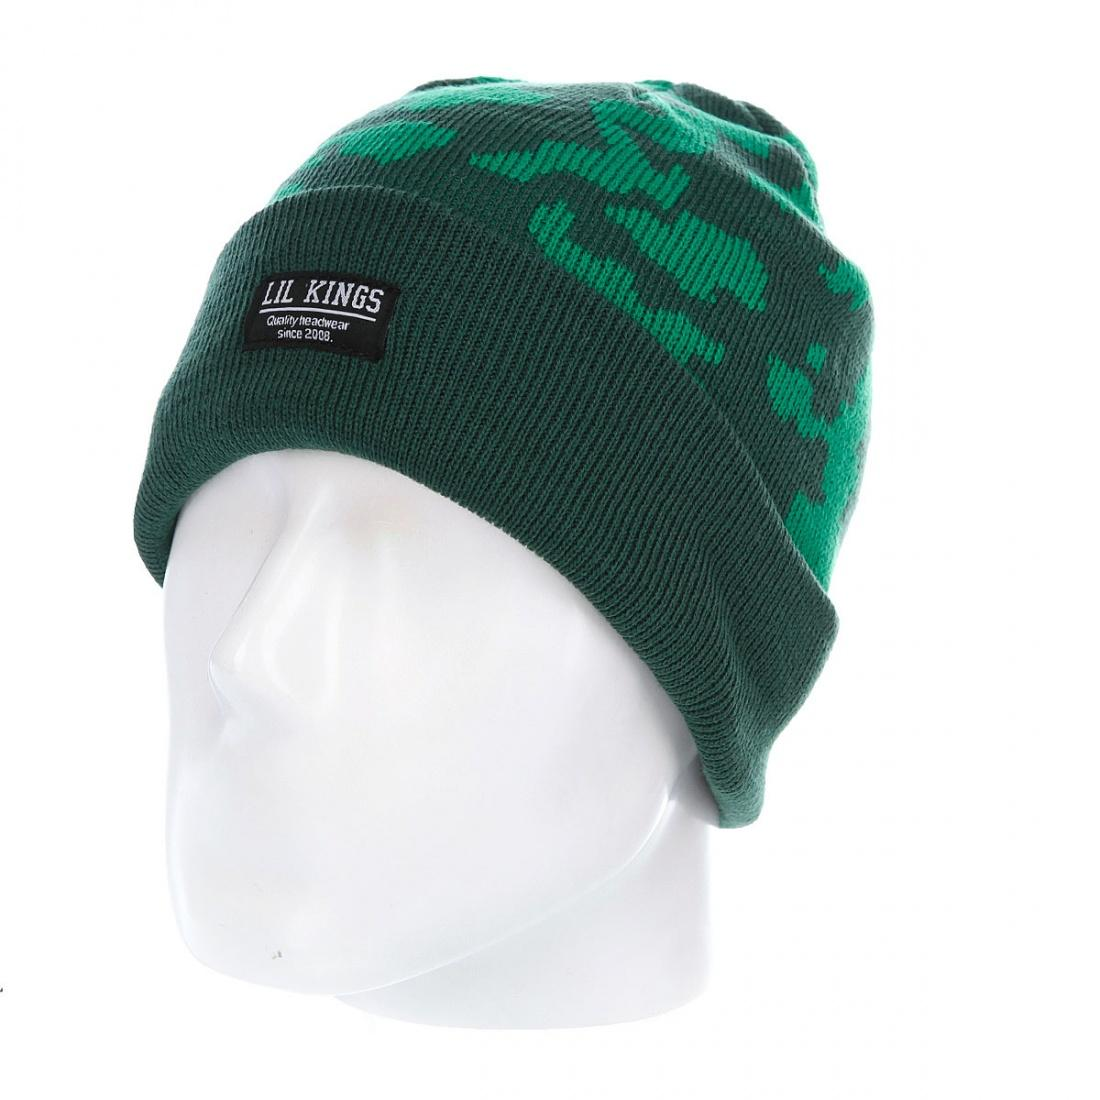 Lil kings Шапка Lil kings Camo Green One size шапка harrison theodore short beanies green